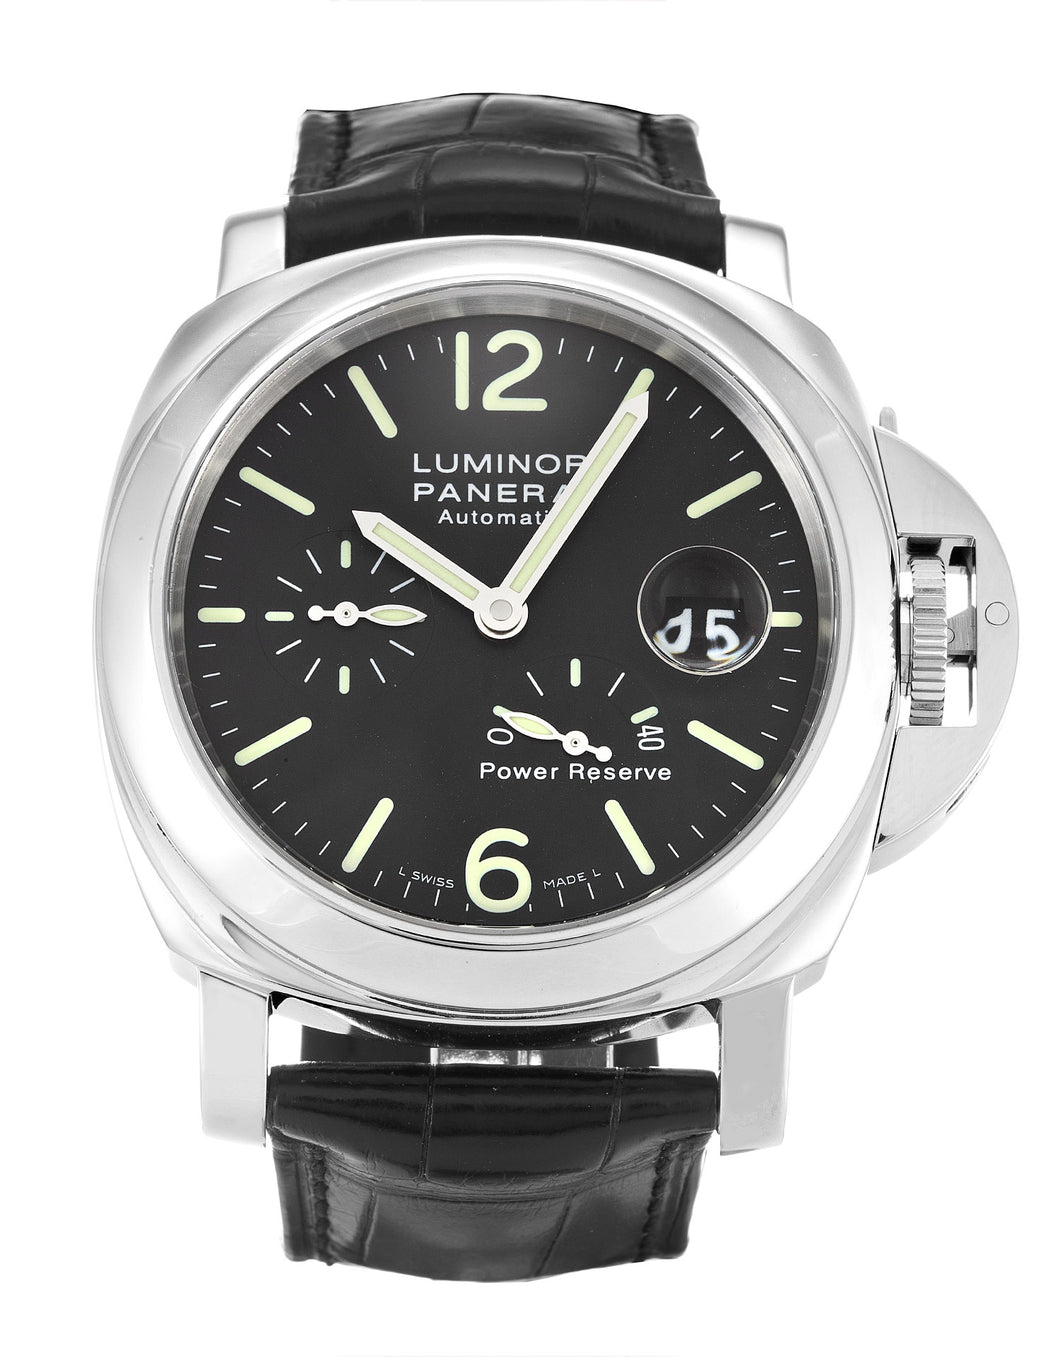 PANERAI LUMINOR POWER RESERVE PAM00090 BLACK BATON DIAL AUTOMATIC